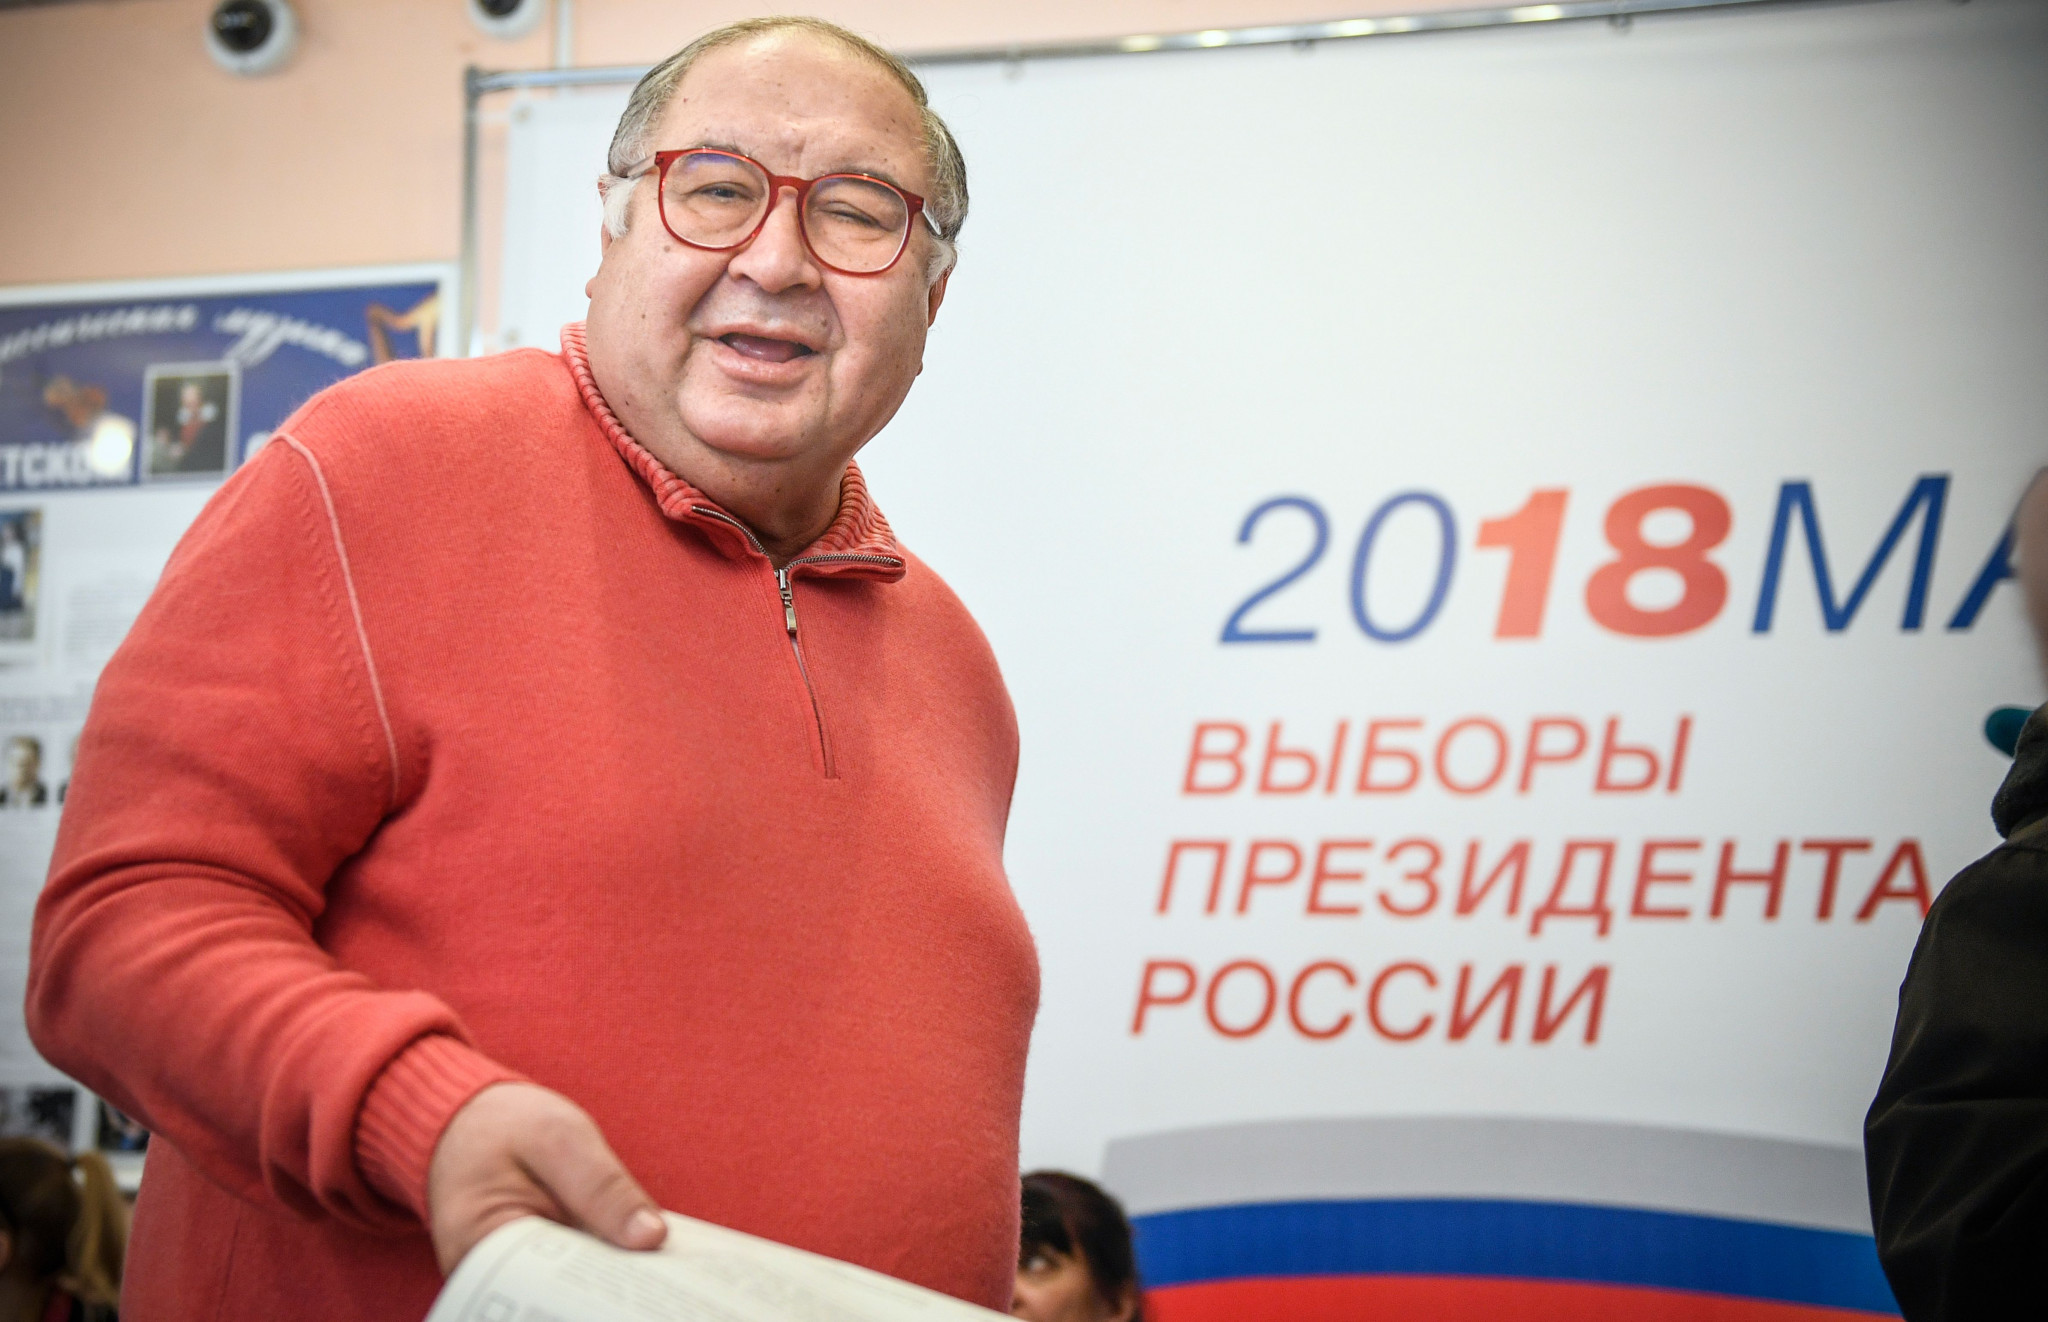 FIE President Alisher Usmanov is also Russian ©Getty Images